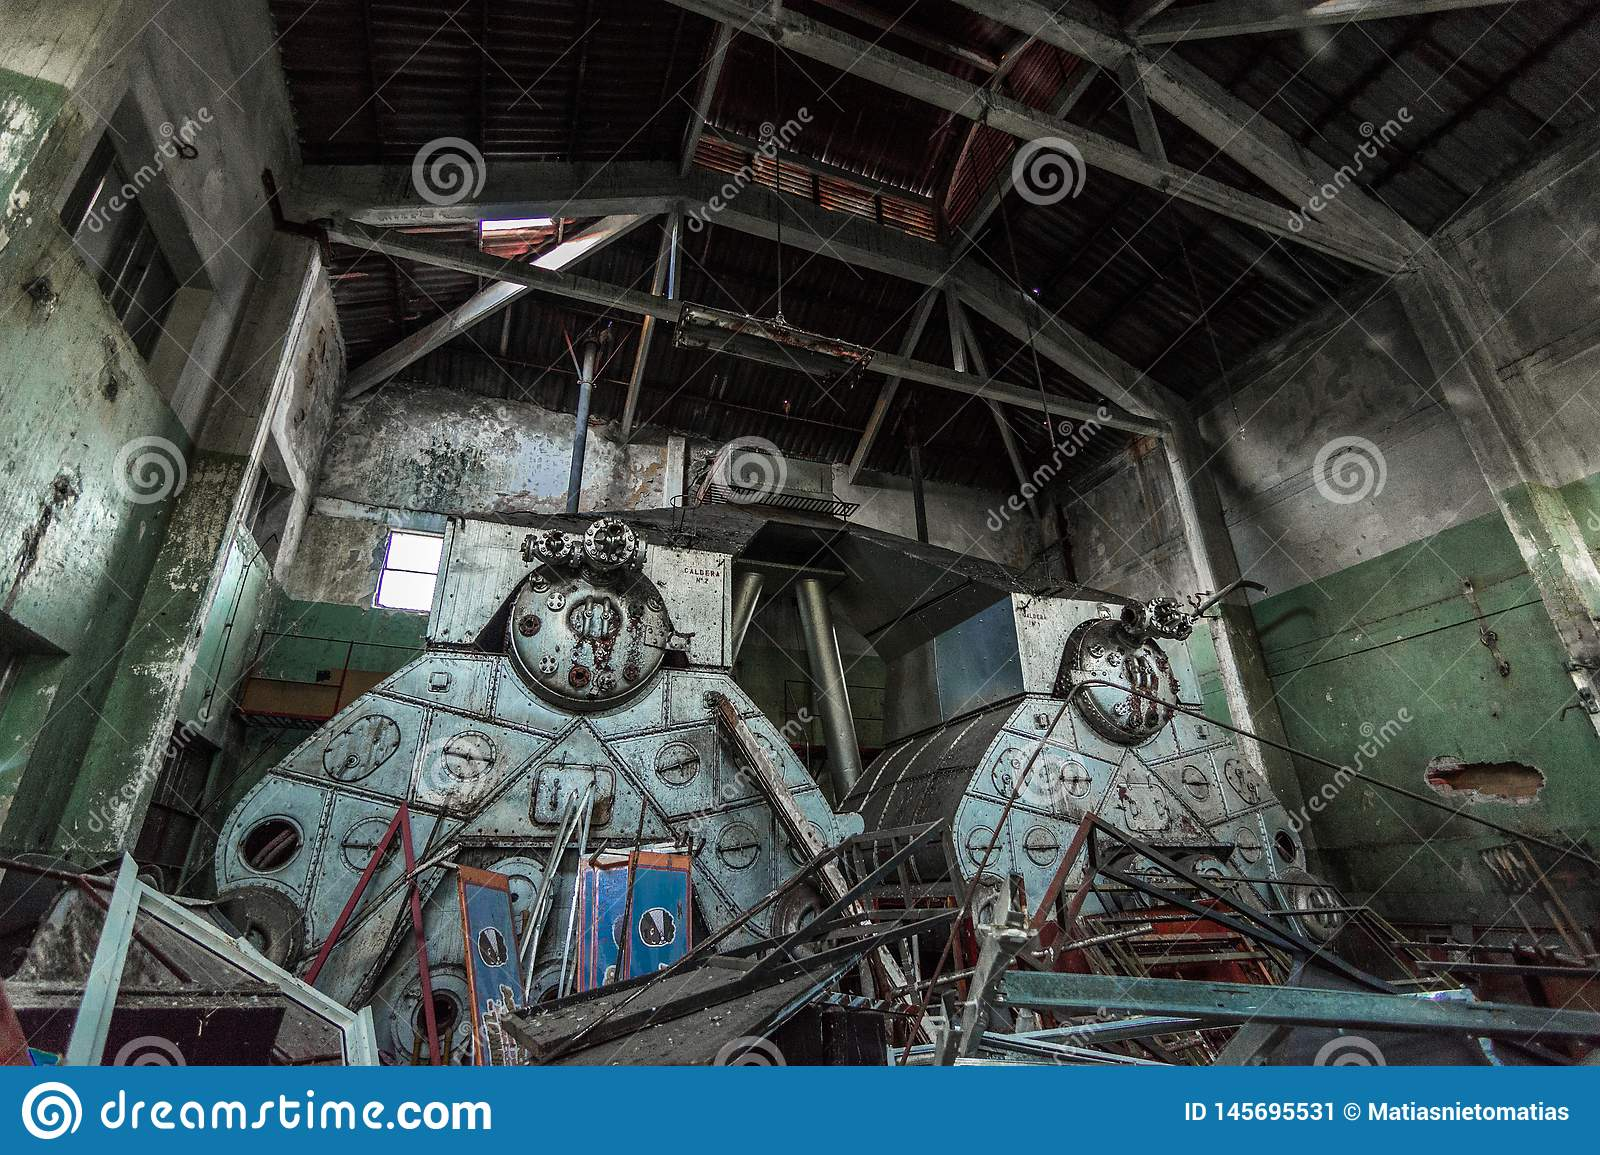 Abandoned factory hangar with giant antique boilers